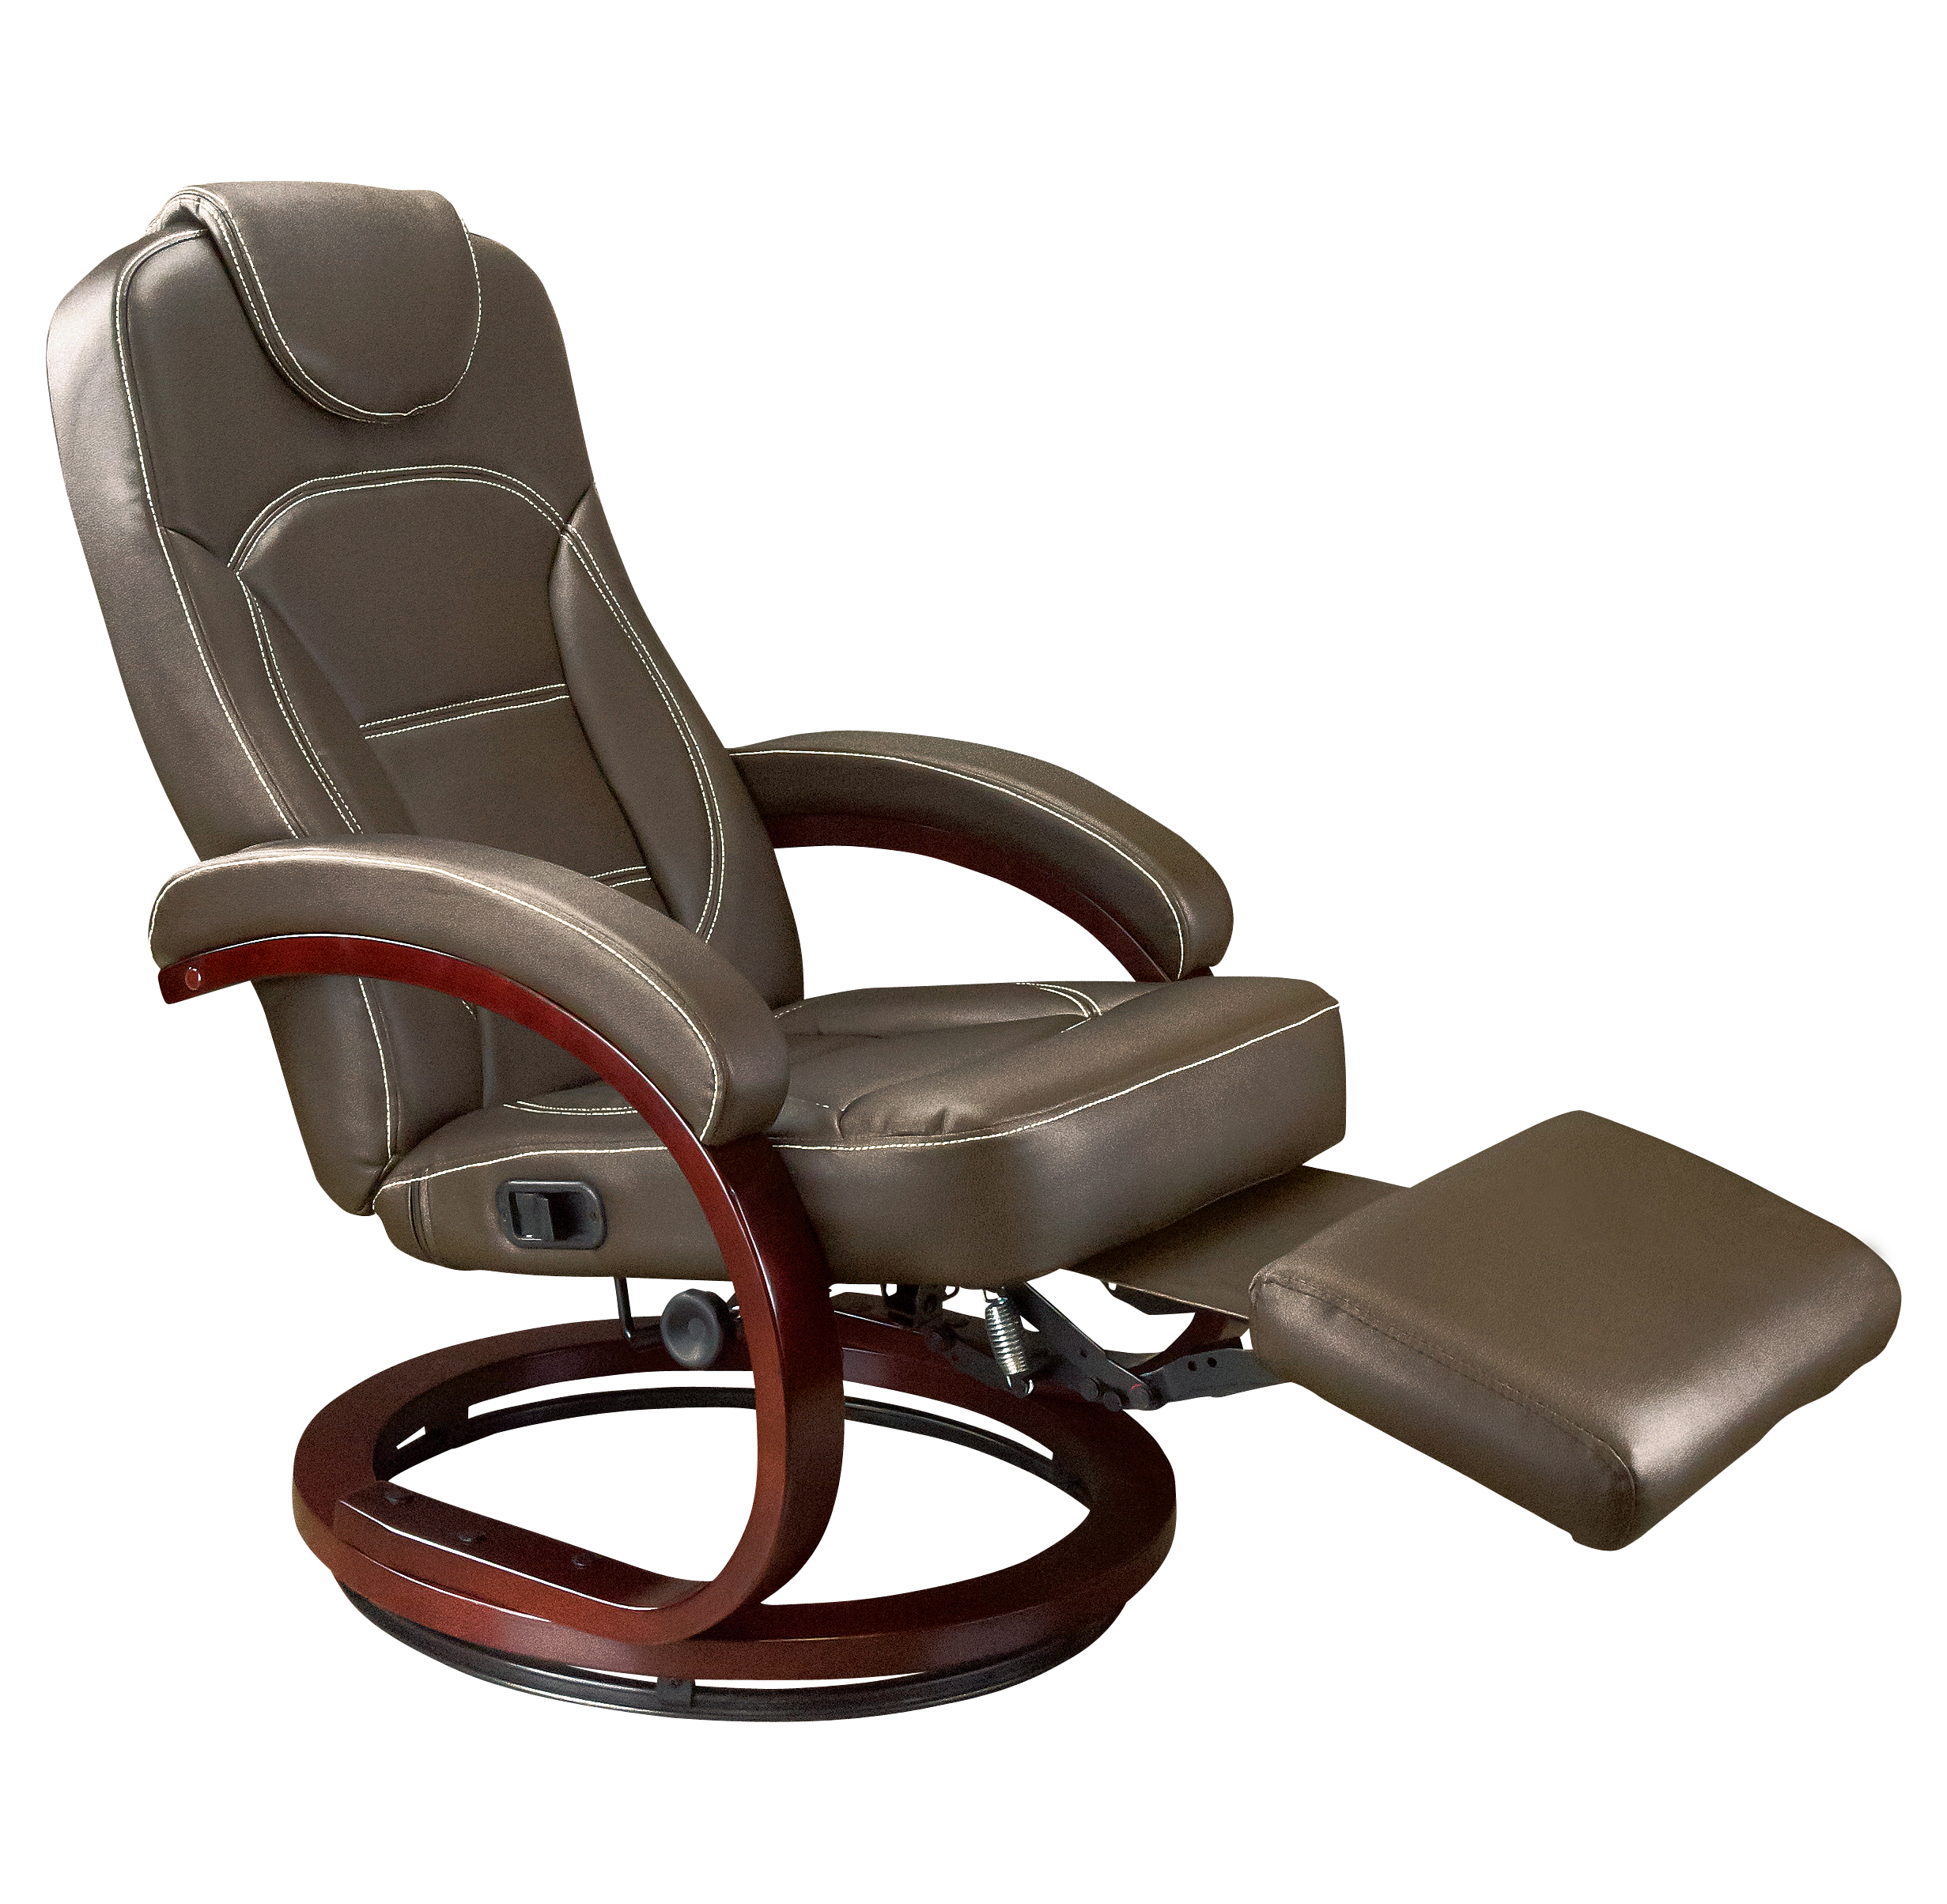 XL Euro Recliner Chair With Footrest Brookwood Chestnut VR Expert